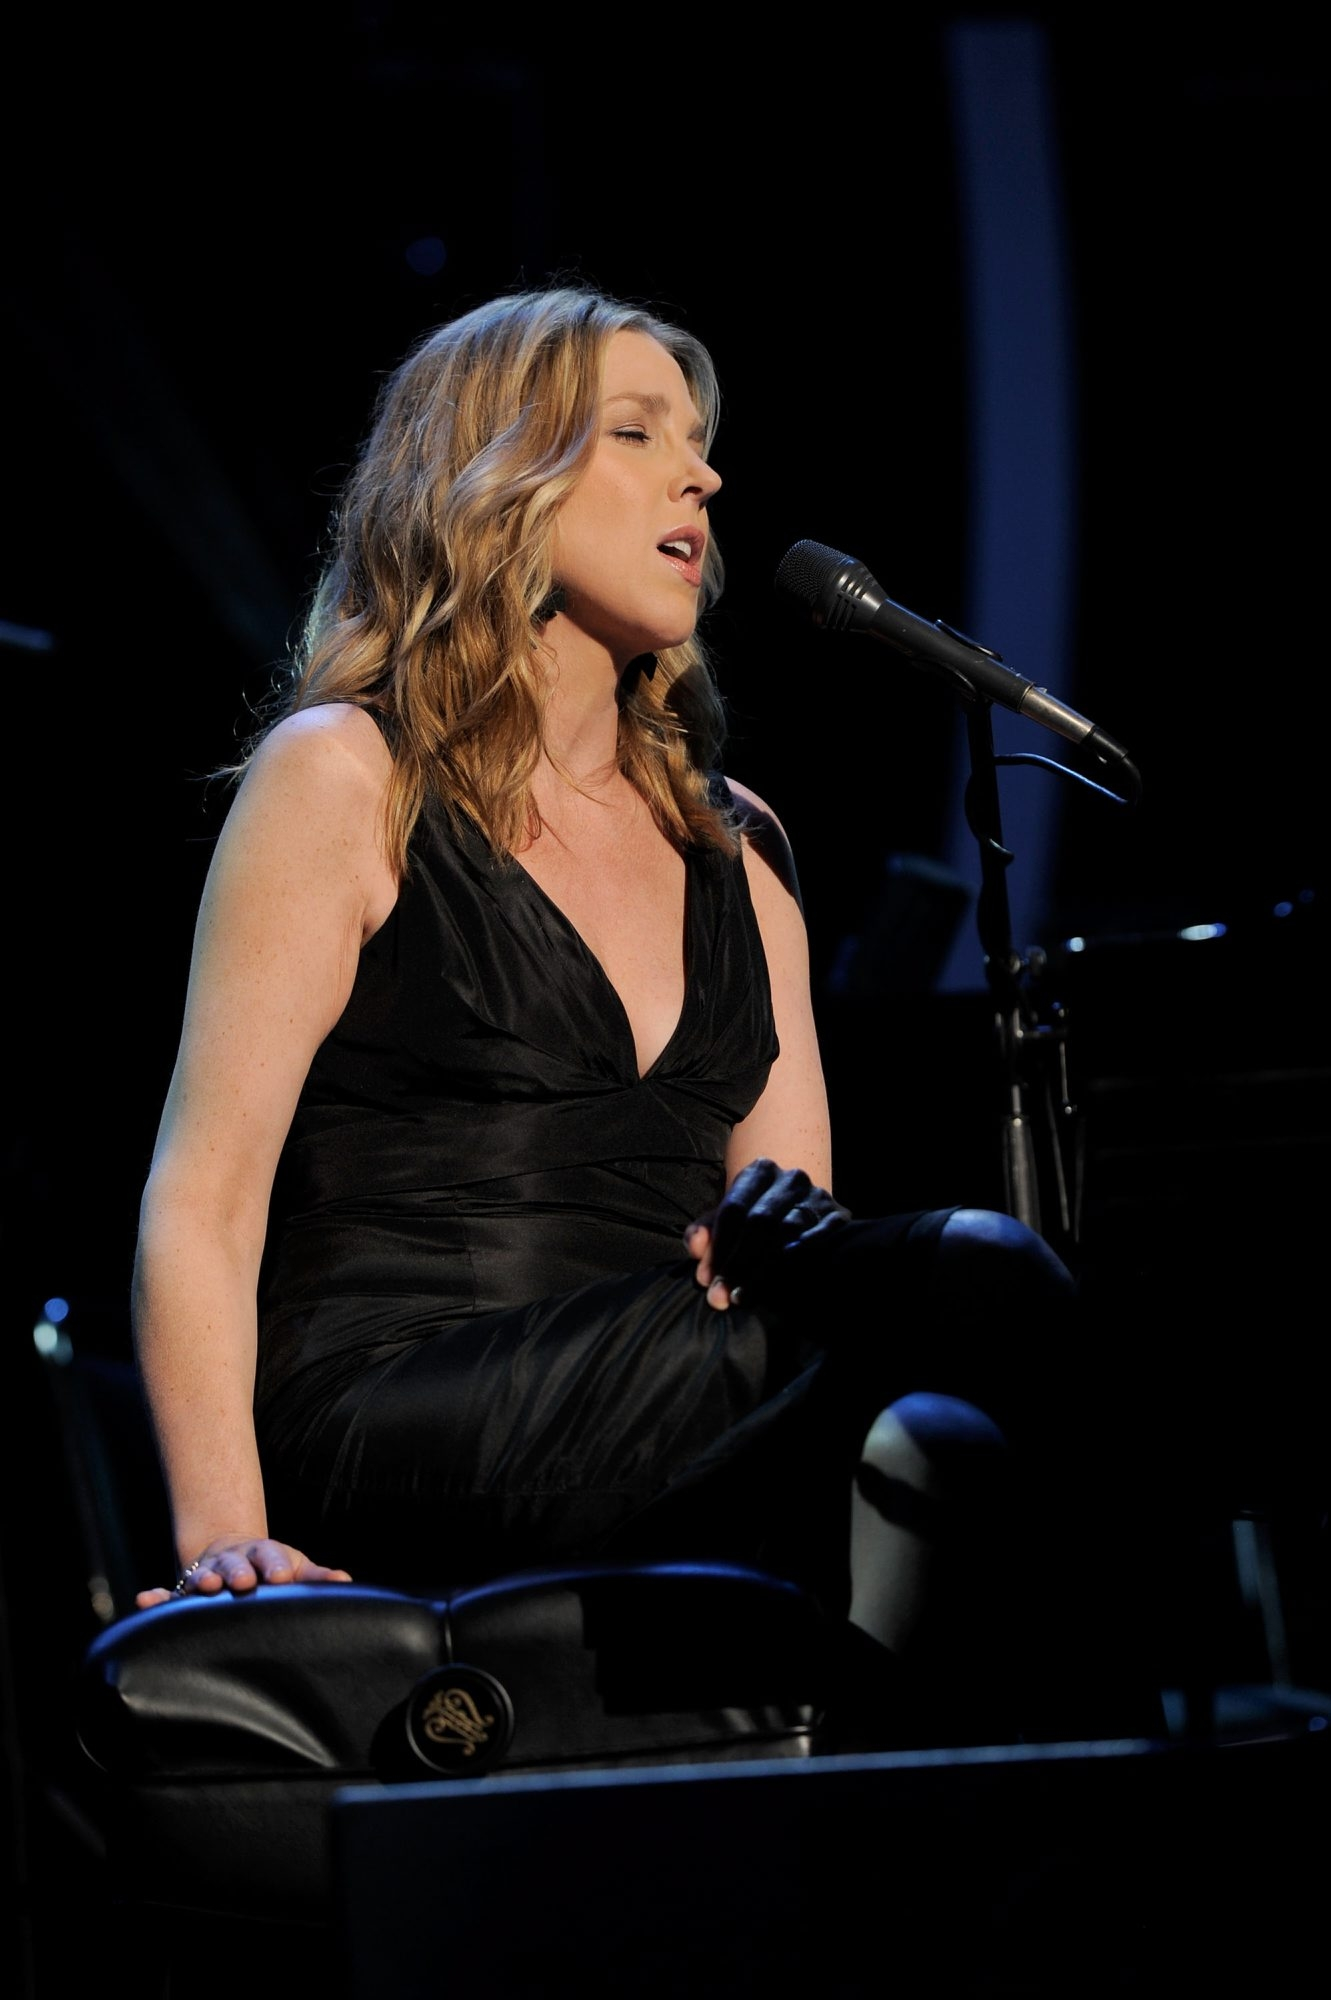 Singer Diana Krall and her musicians earned their standing ovation from a packed house at the UB Center for the Arts. (Getty Images)